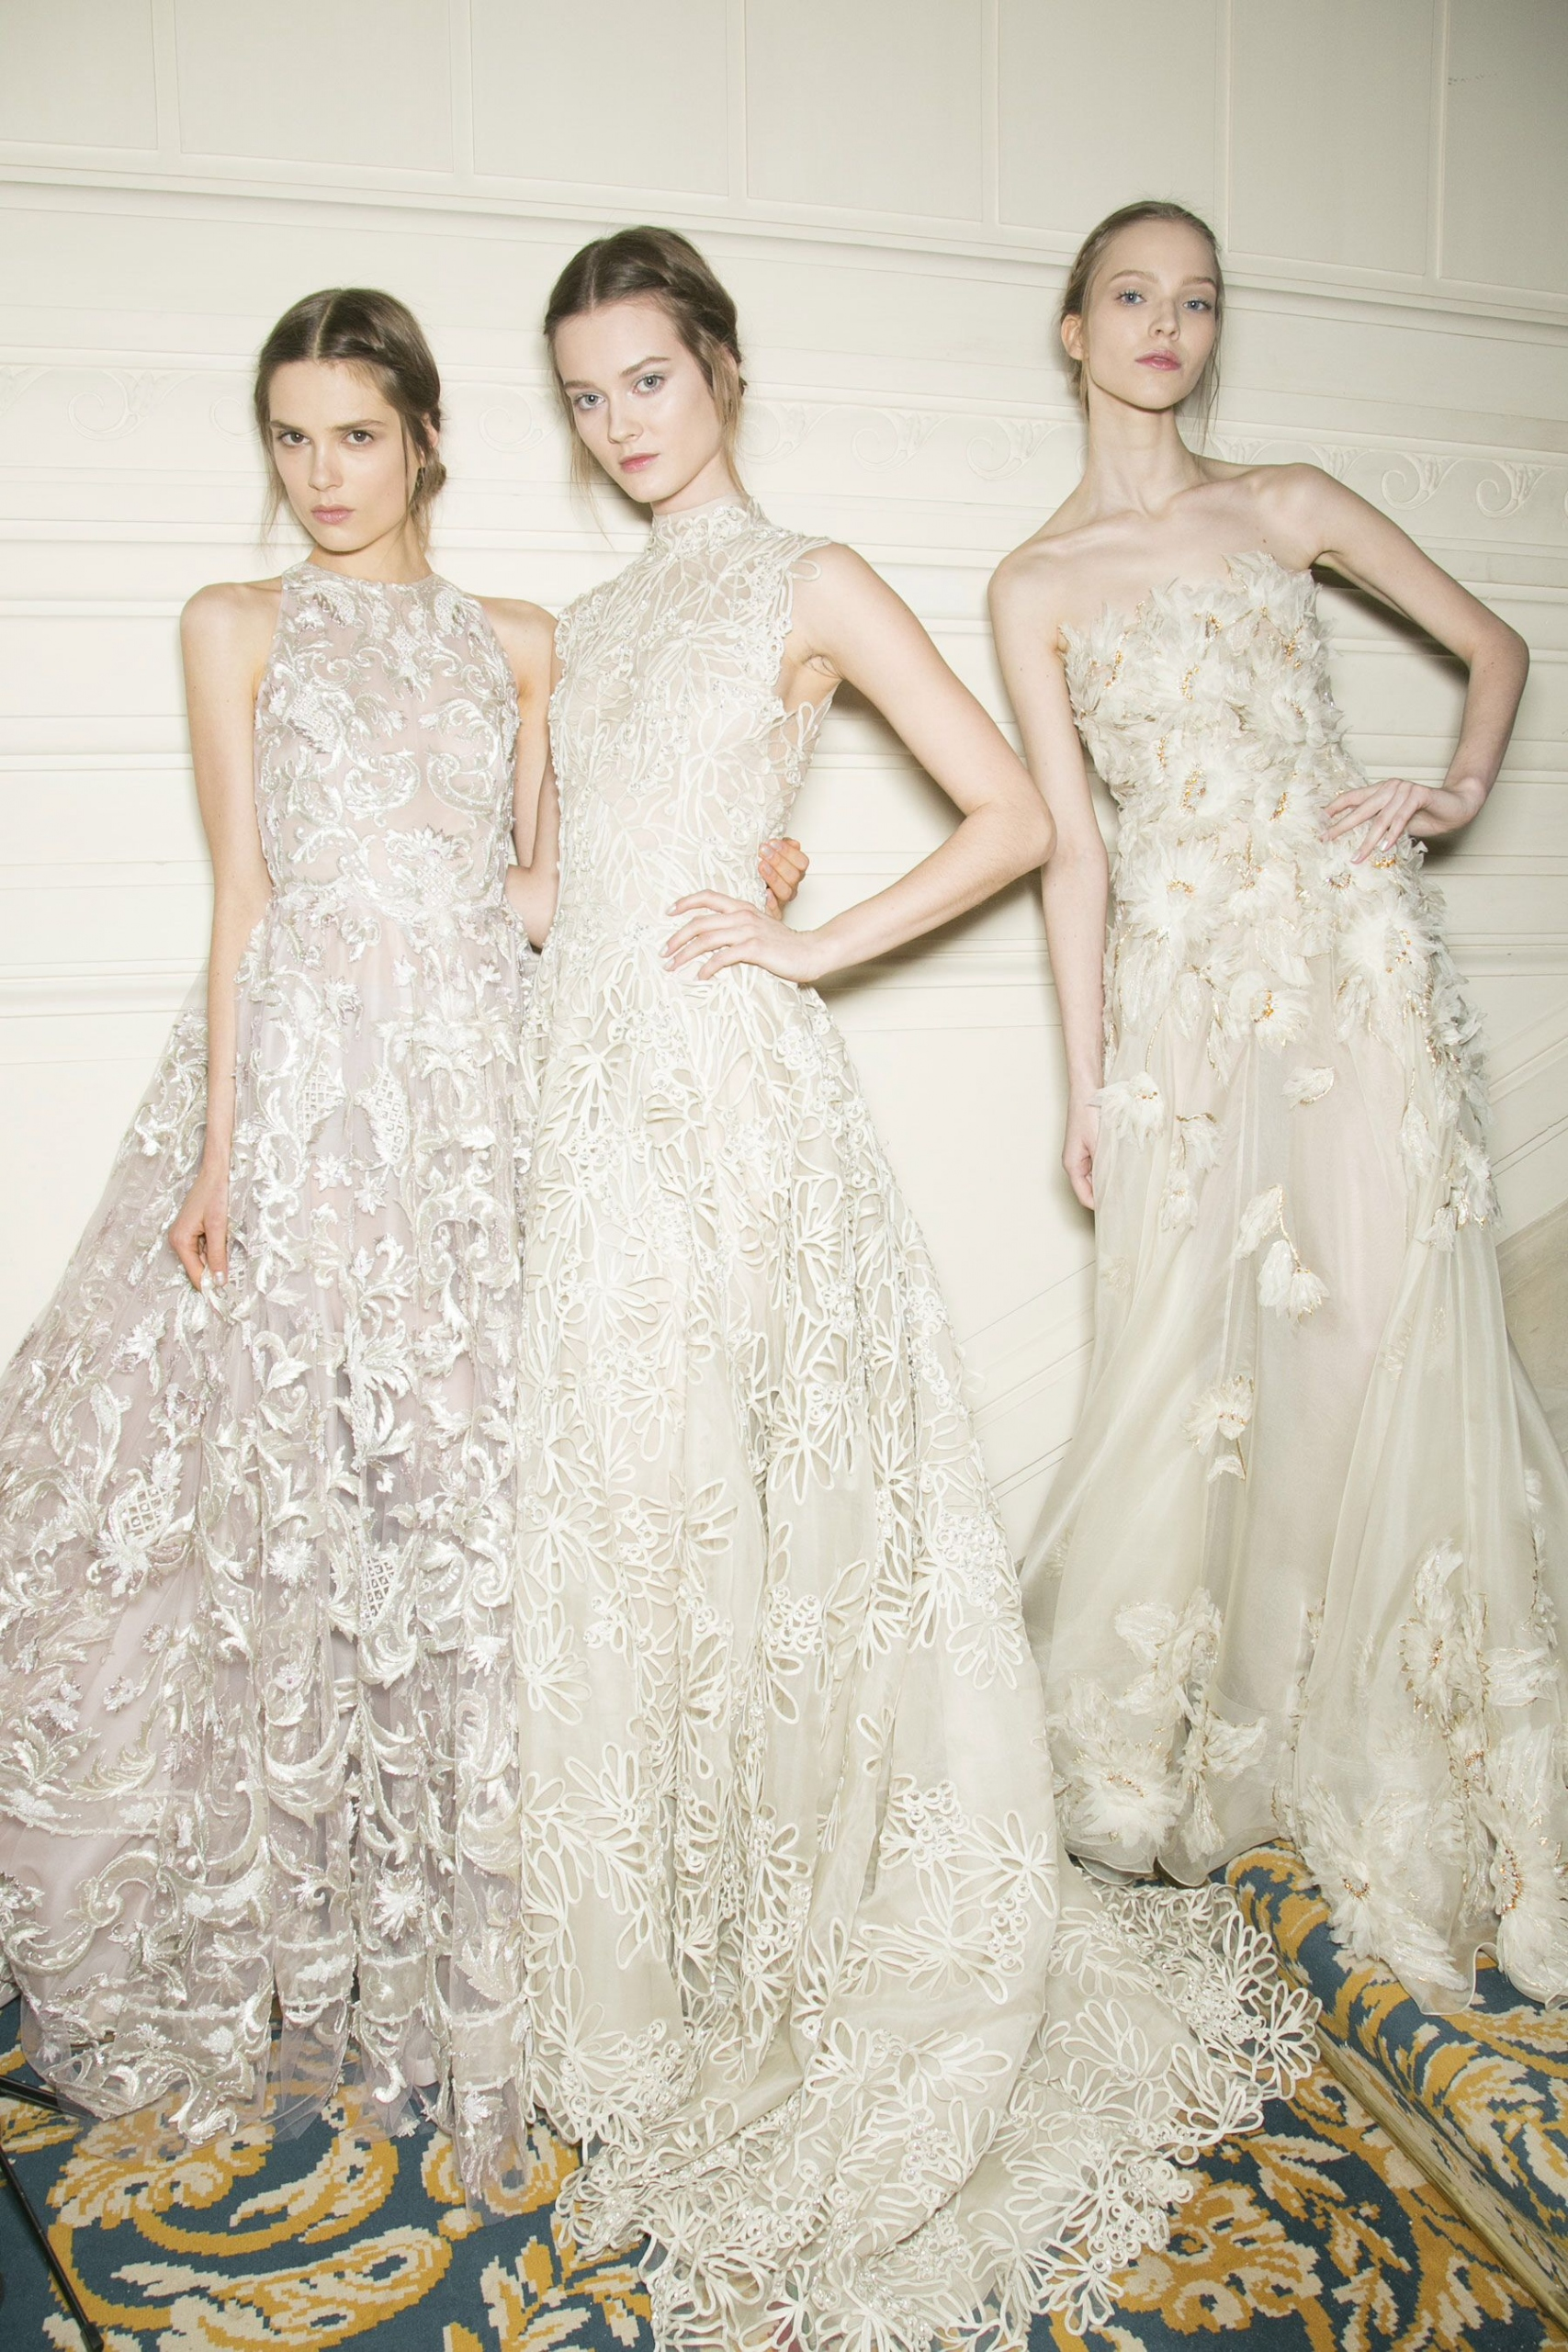 These Designer Gowns Are On Major Sale Could Be Your Wedding Dress